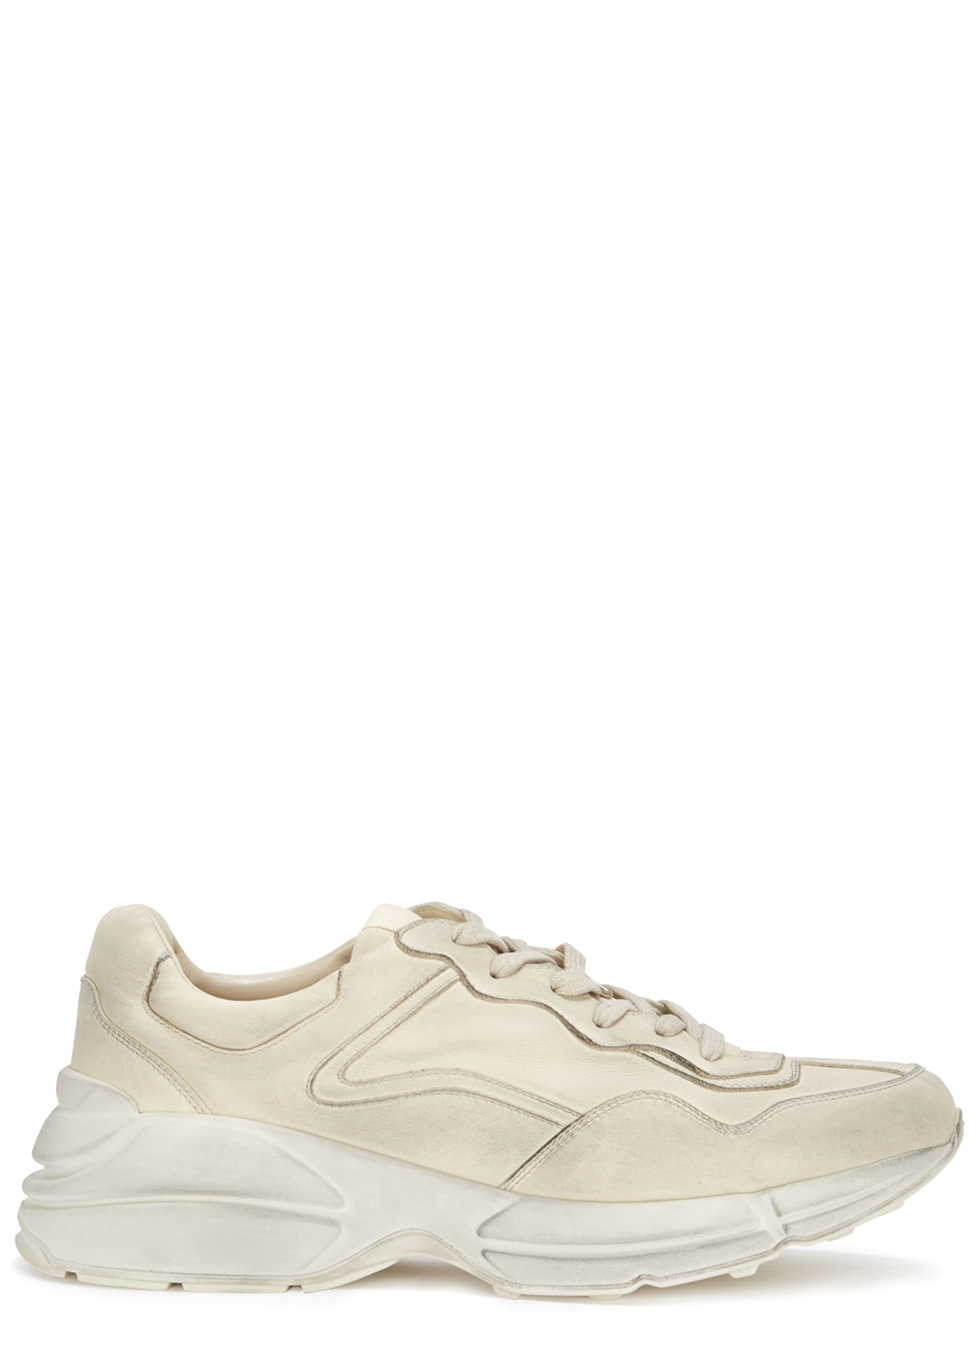 GUCCI RHYTON DISTRESSSED LEATHER TRAINERS